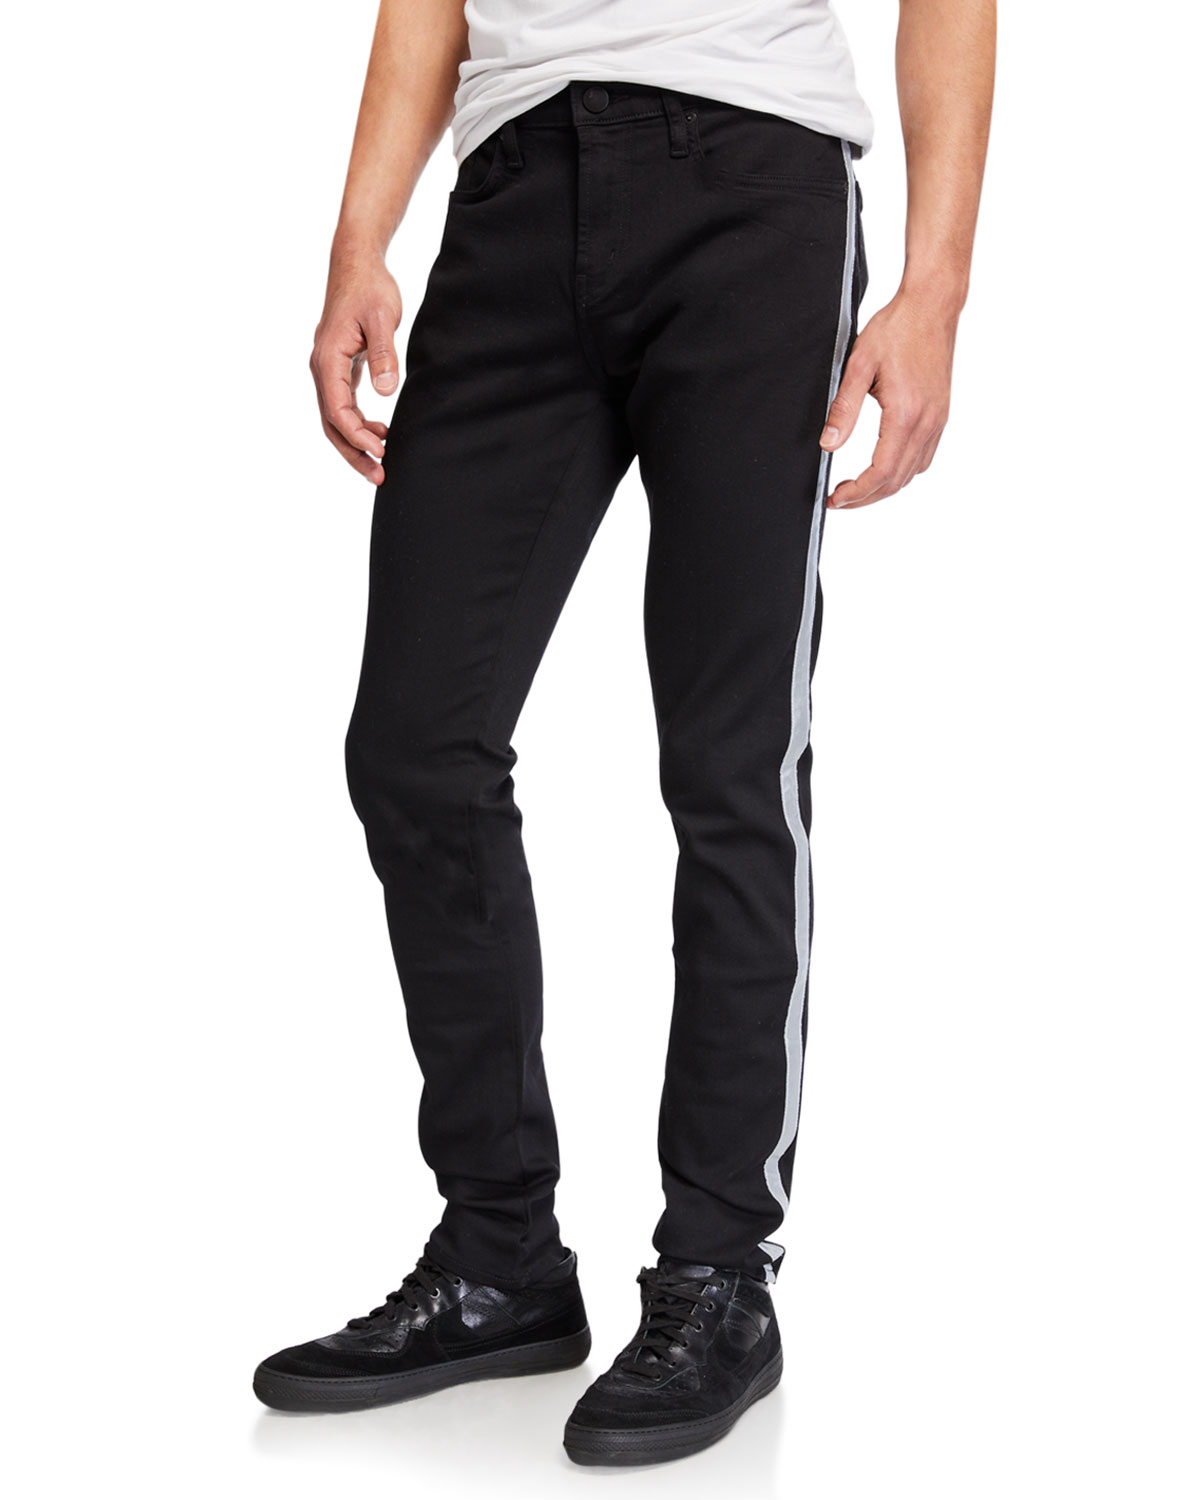 J Brand Mick Skinny Fit With Reflective Stripe - 100% Exclusive In Kromeflective